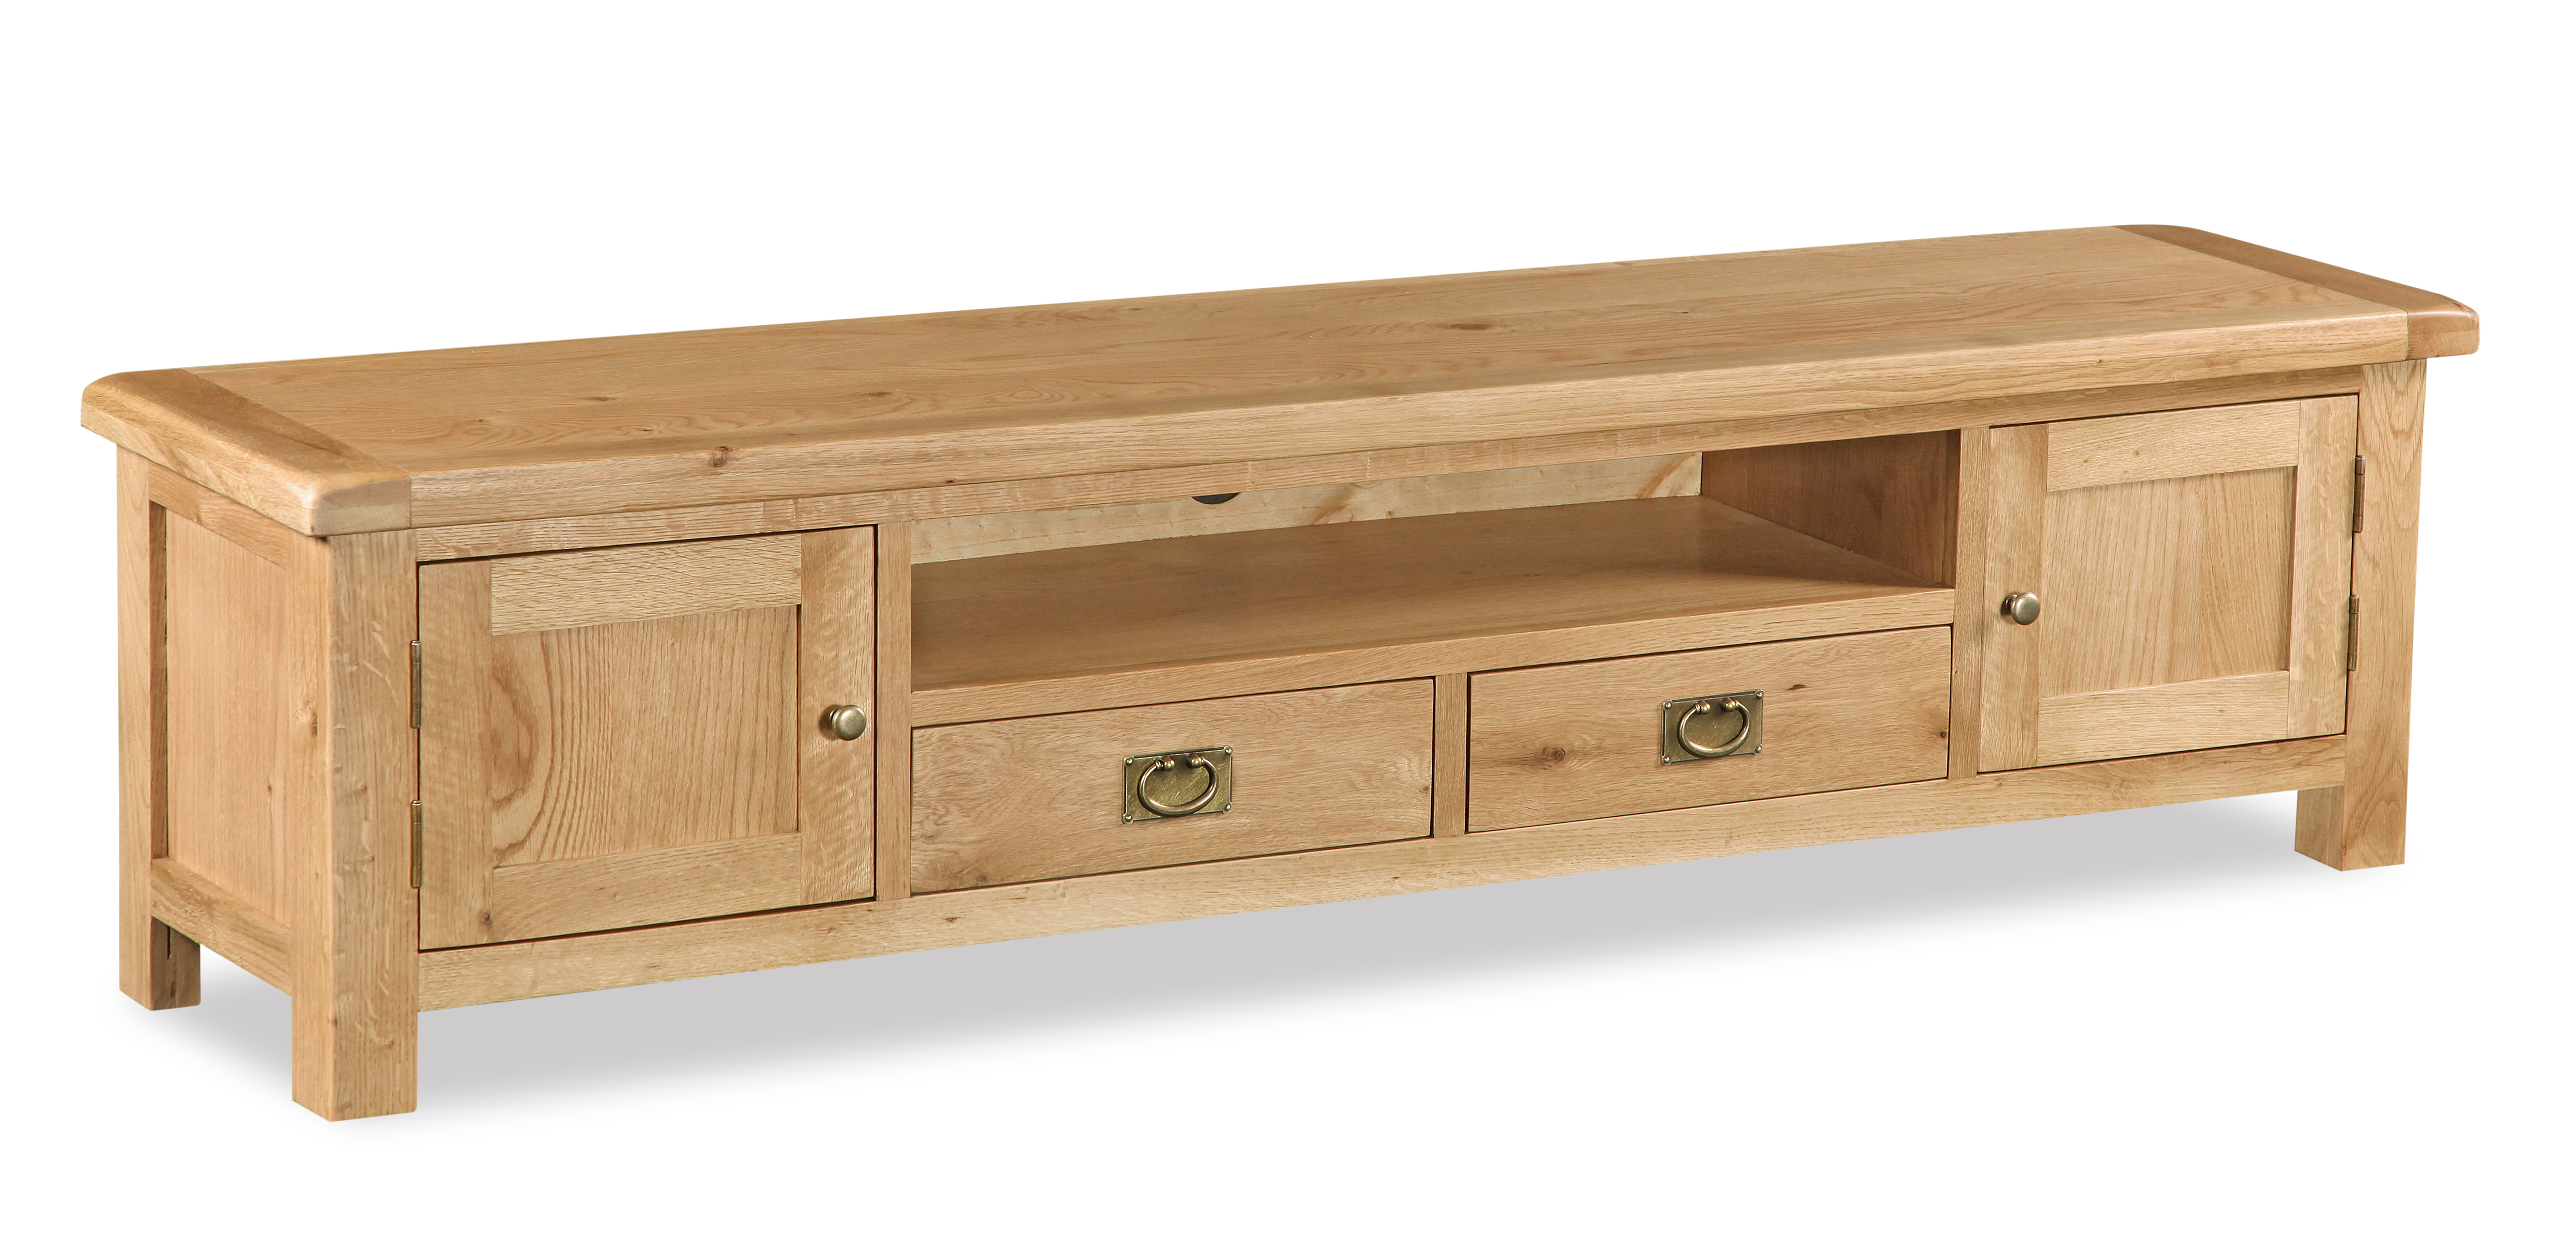 Improve the Appearance of the Workplace With an Oak Edge Workdesk